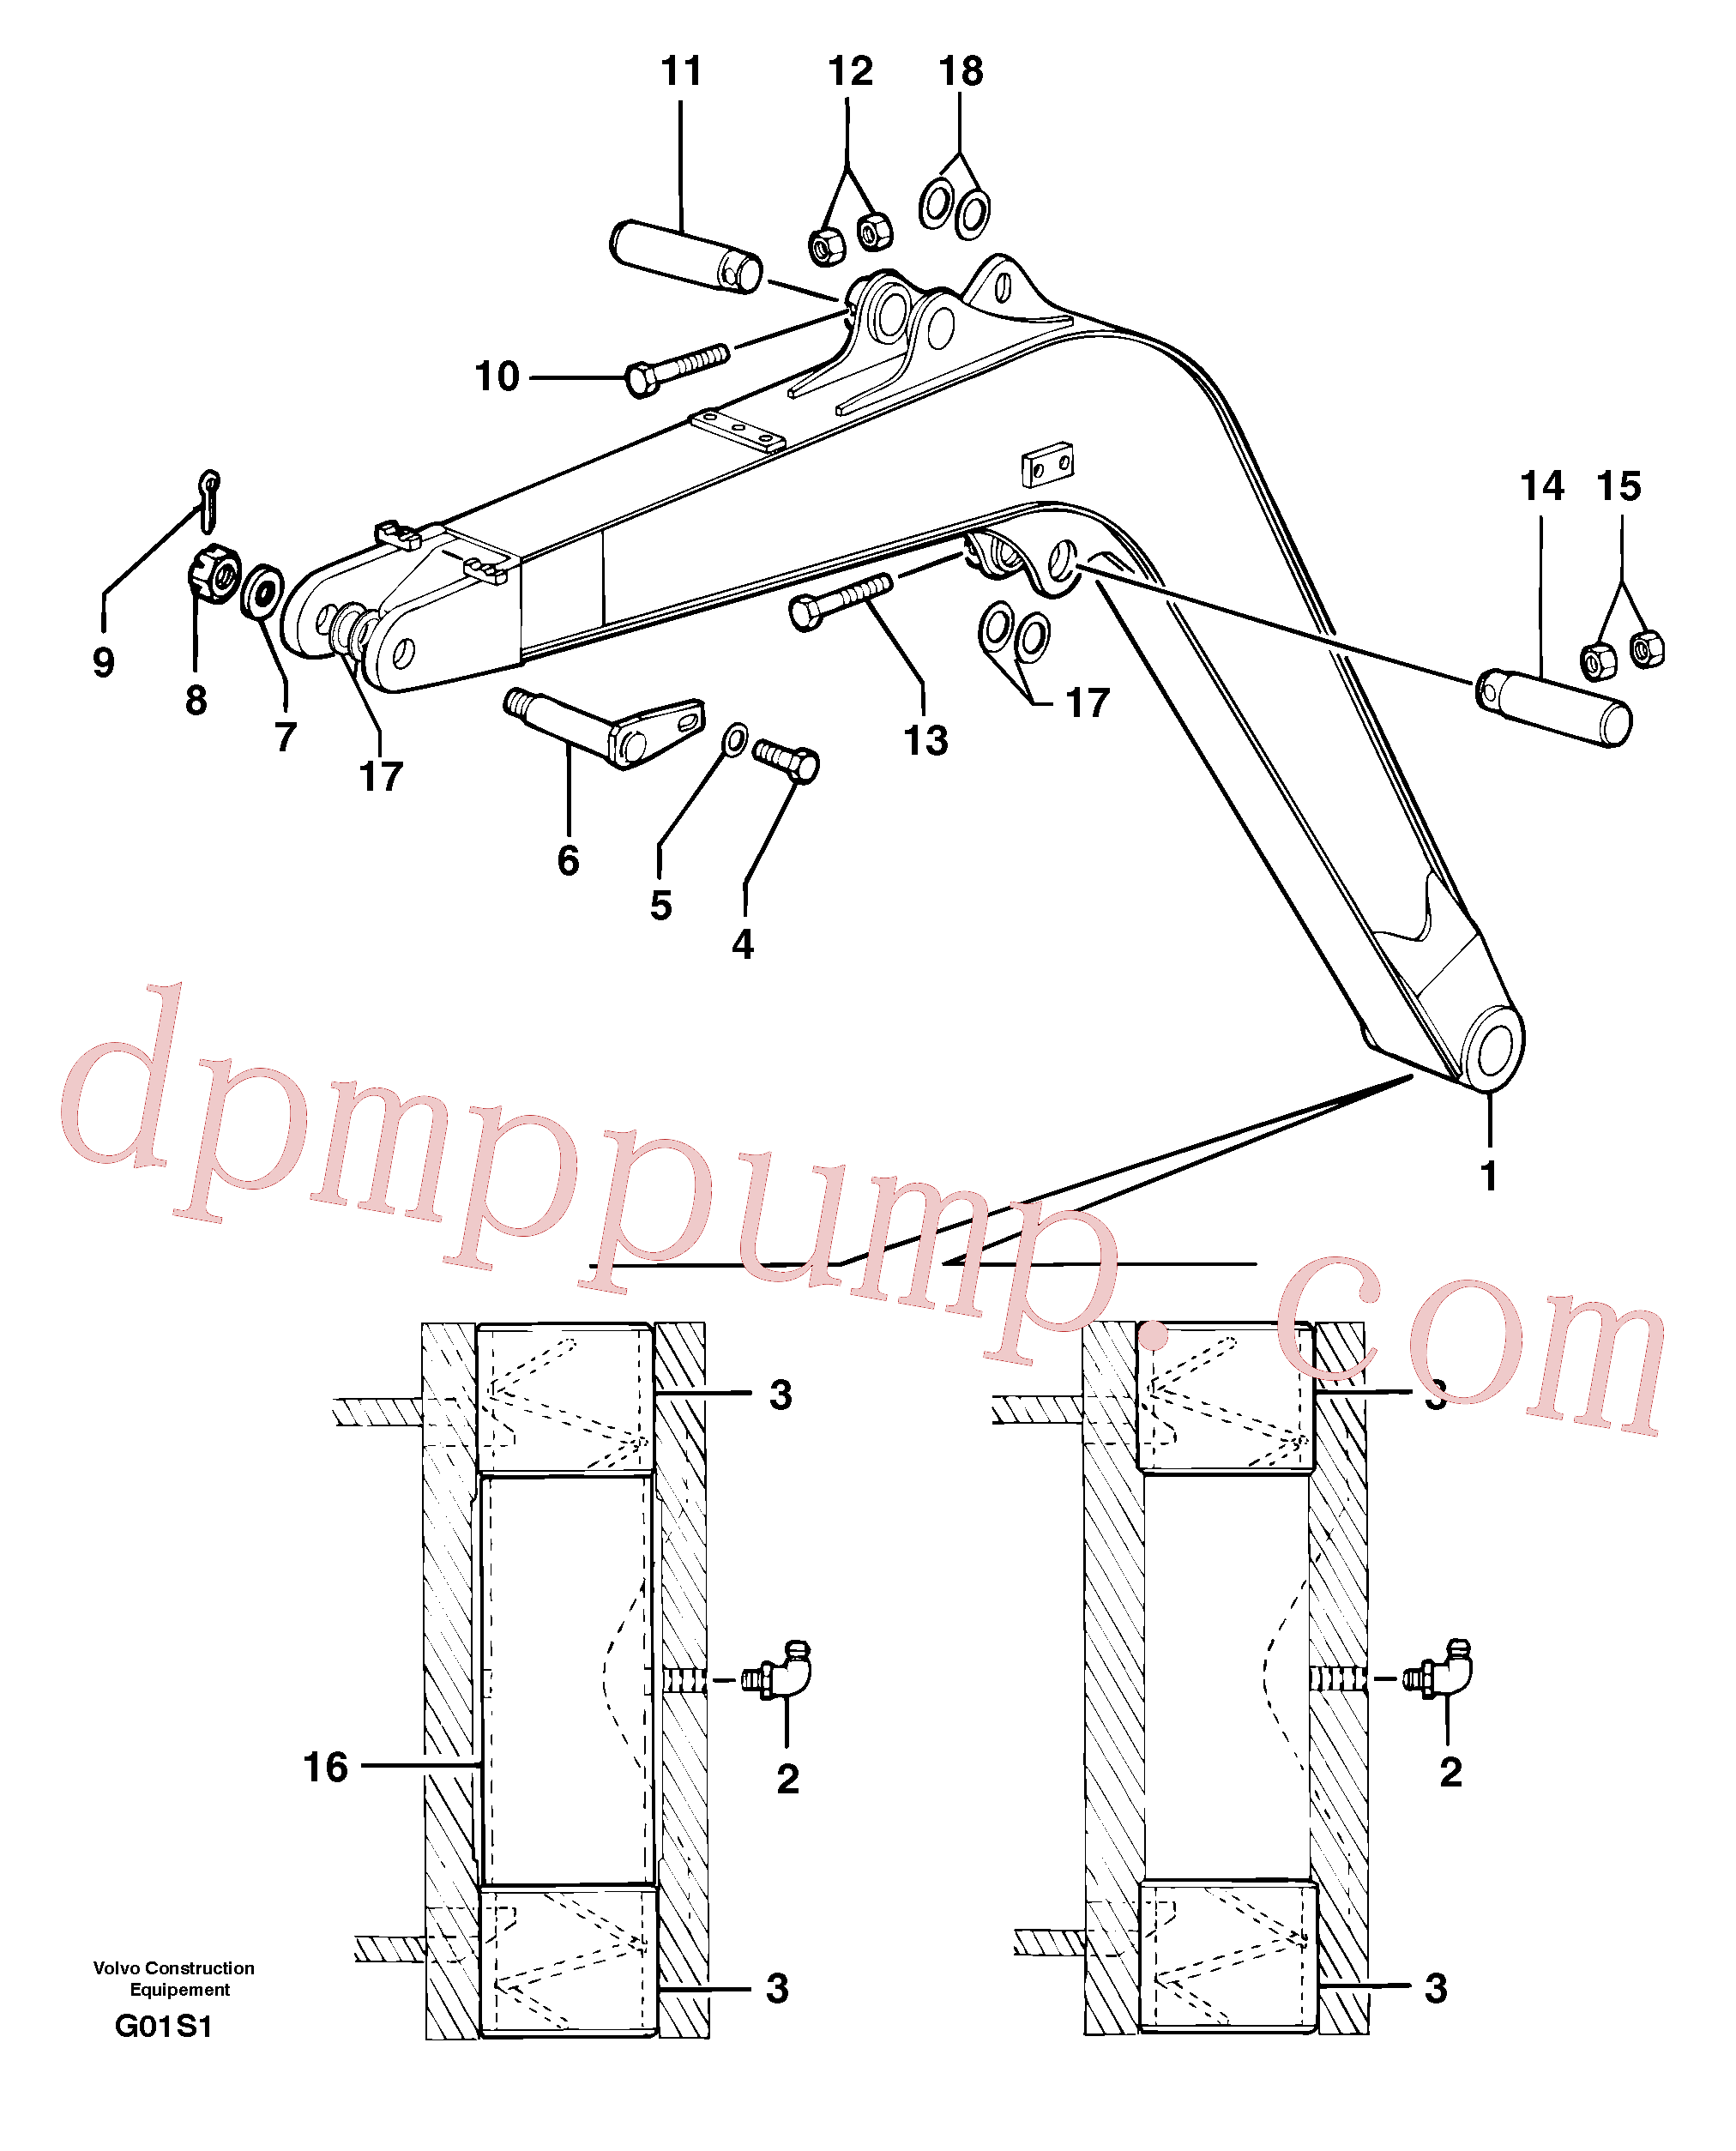 PJ5540101 for Volvo Boom(G01S1 assembly)